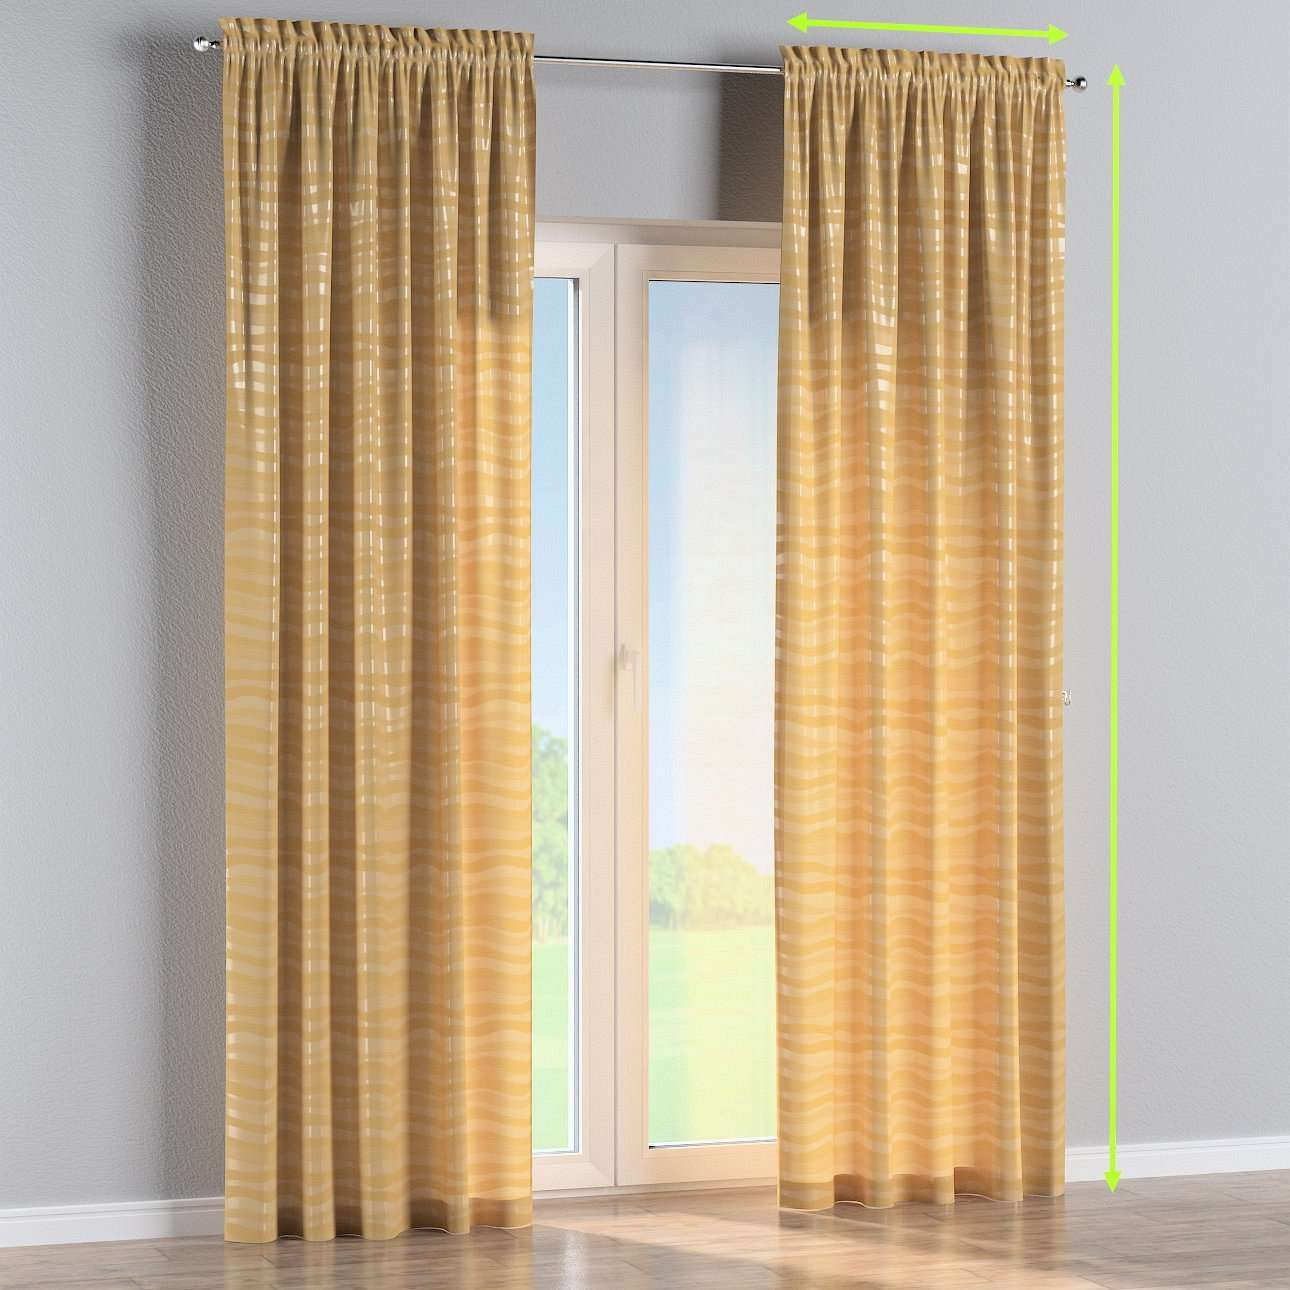 Slot and frill lined curtains in collection Damasco, fabric: 141-74